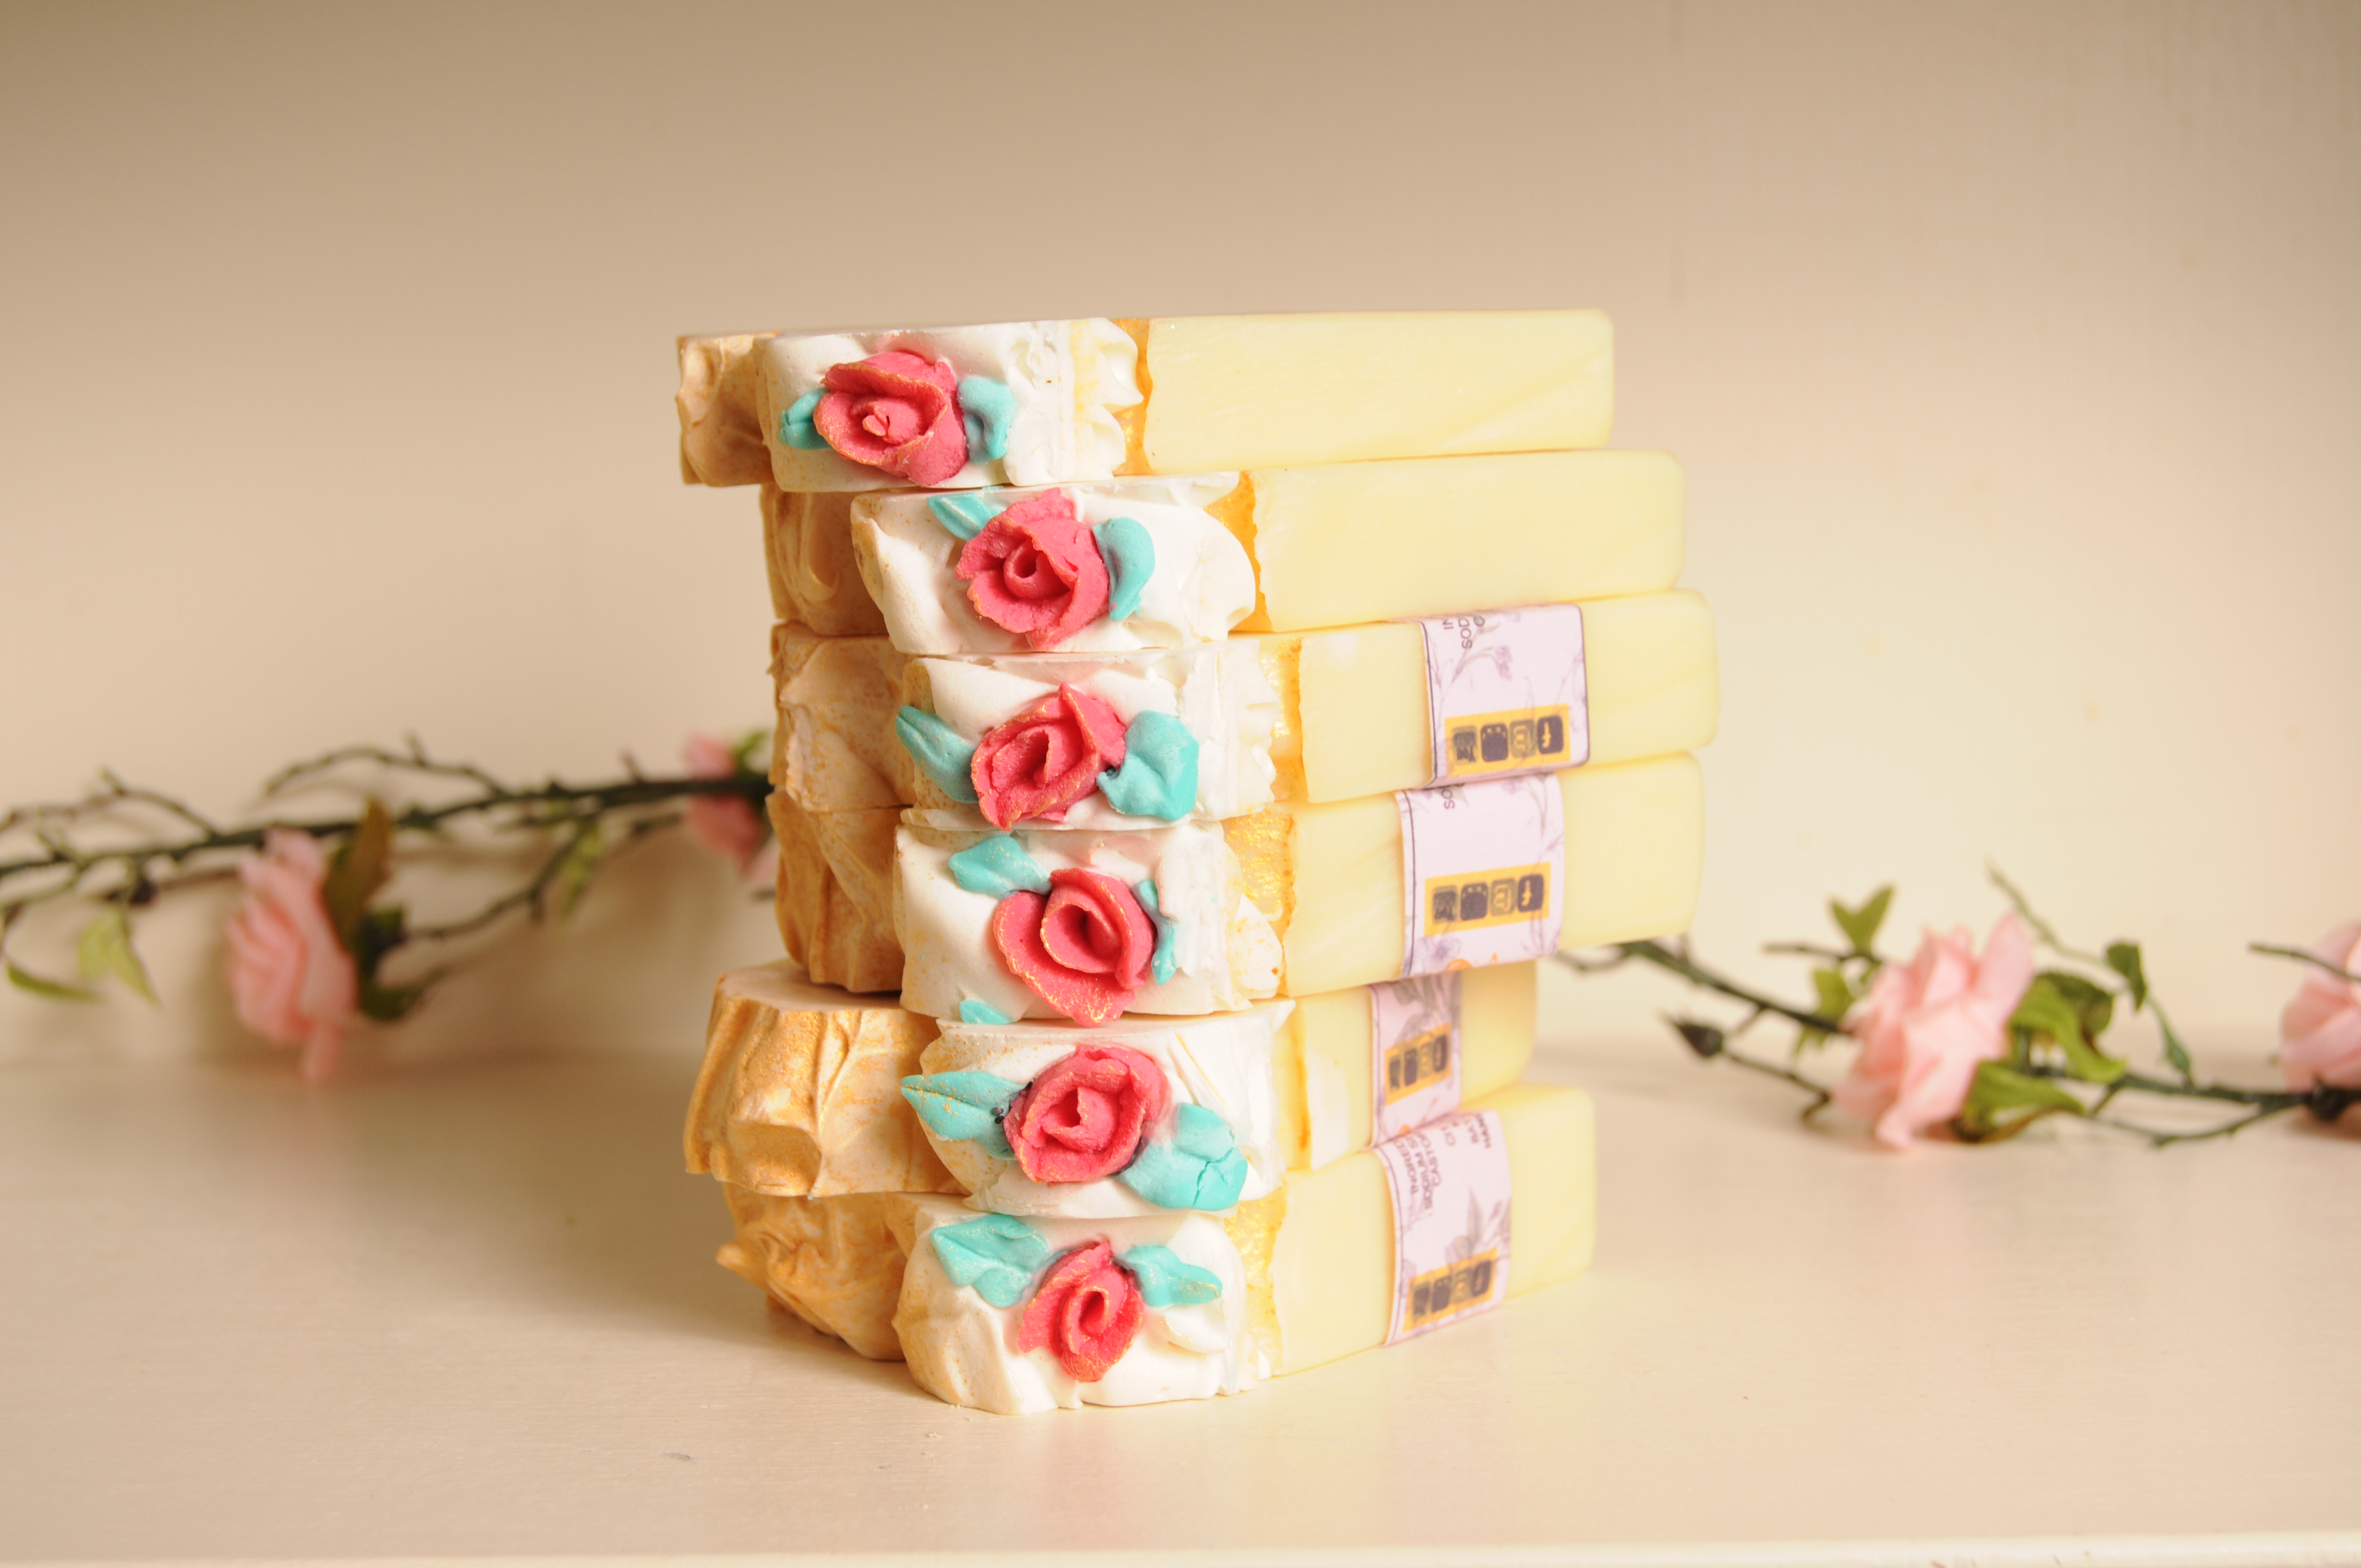 BEAUTY AND THE BEAST SOAPS